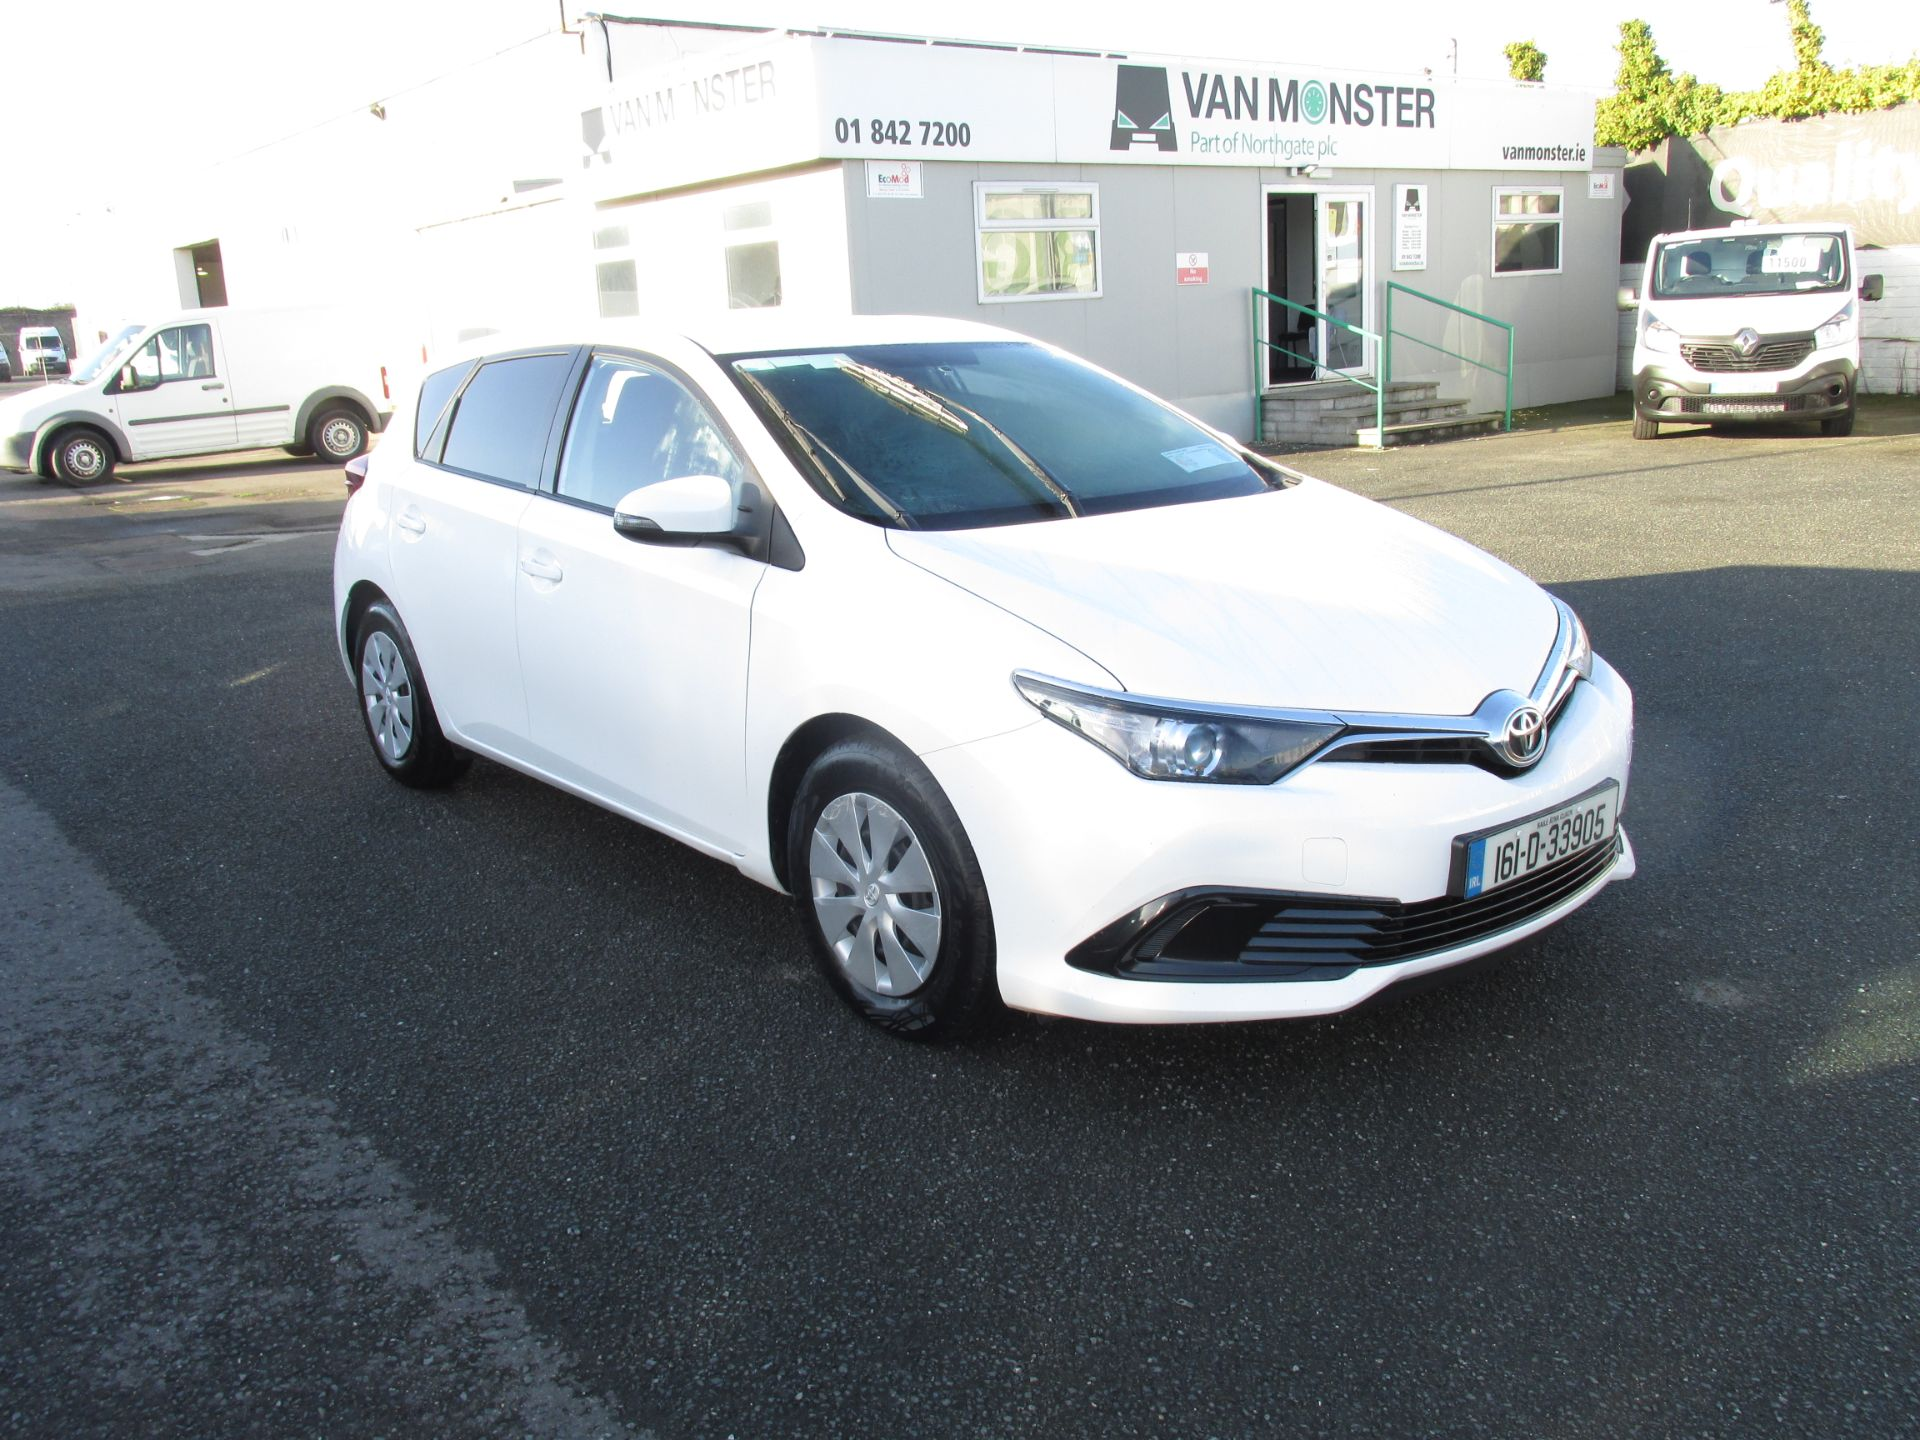 2016 Toyota Auris 1.4d-4d Terra 4DR click and collect call sales for more info (161D33905) Image 1